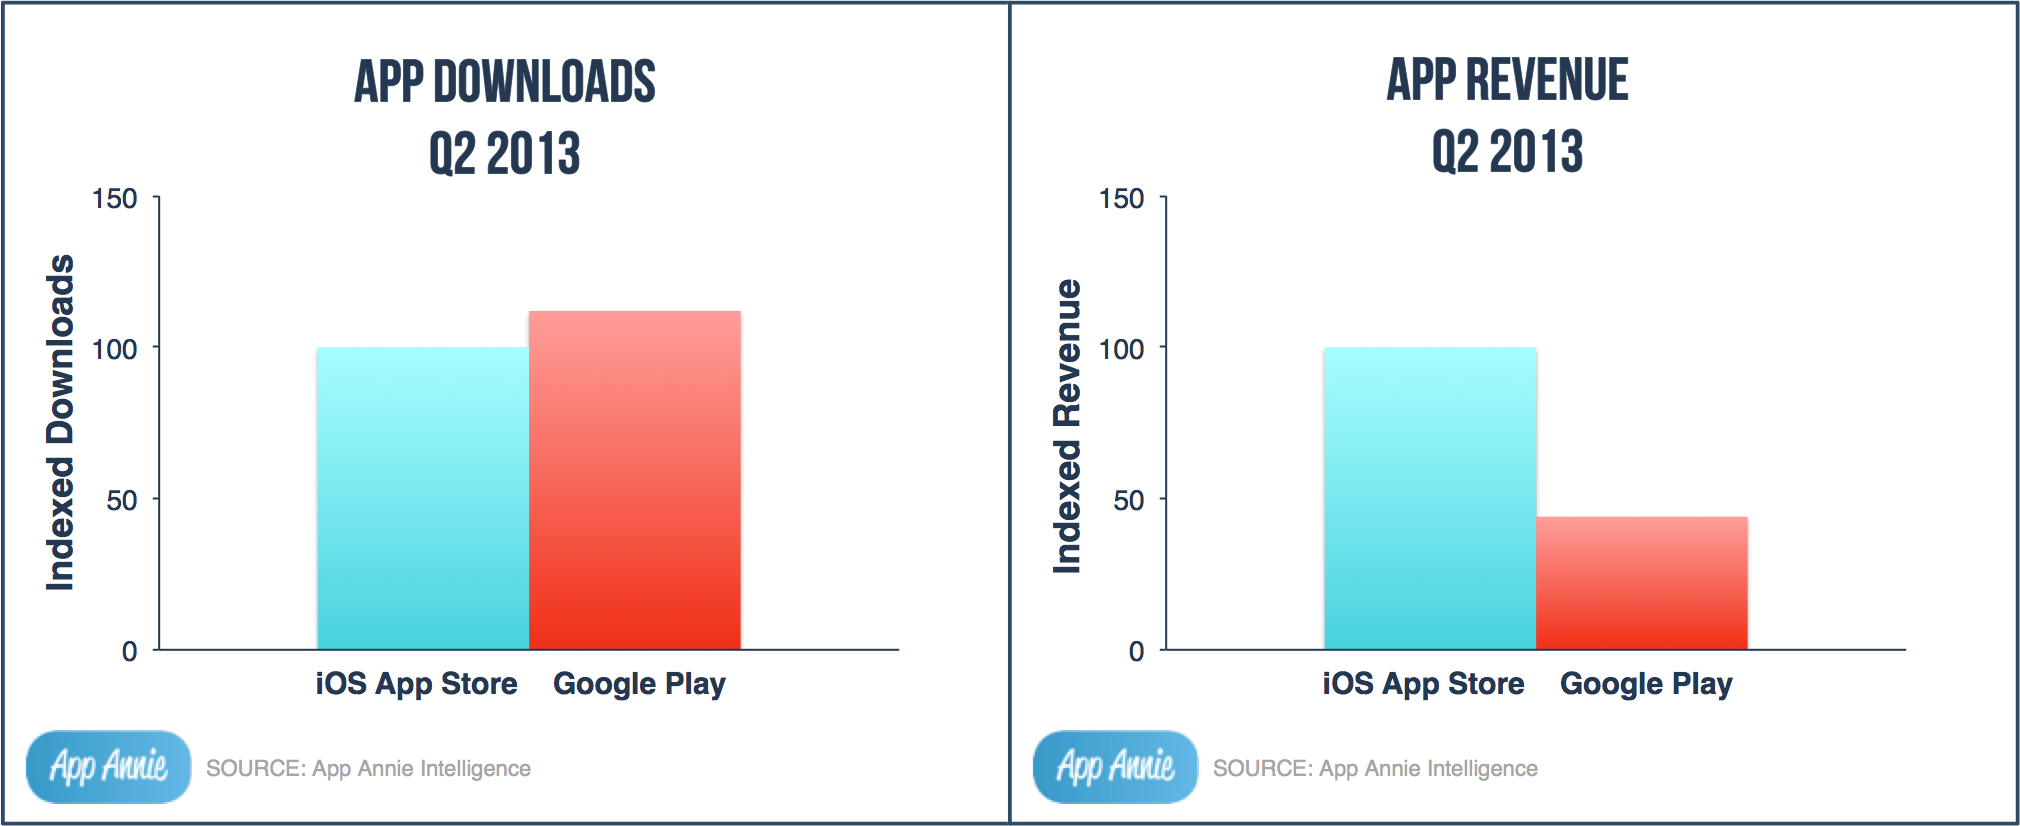 Google play surpassed ios app store in app downloads by 10 Play app